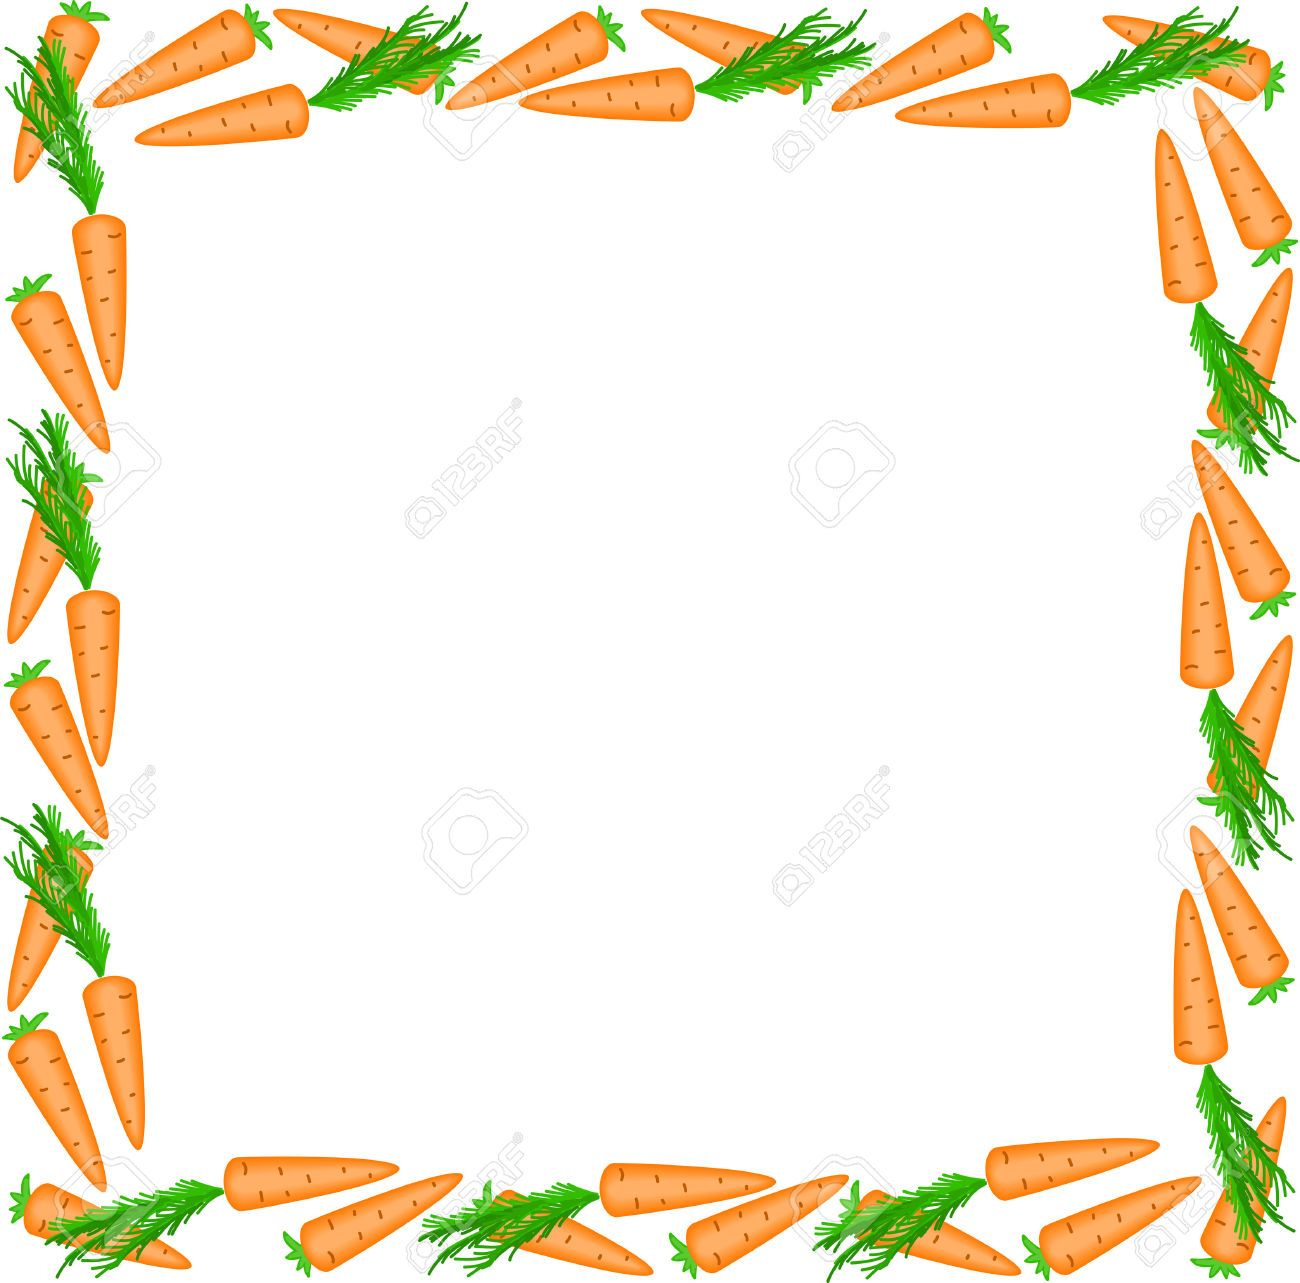 Rabbit border clipart image royalty free download Carrot clipart border #11 | Bunny Crafts | Page borders ... image royalty free download